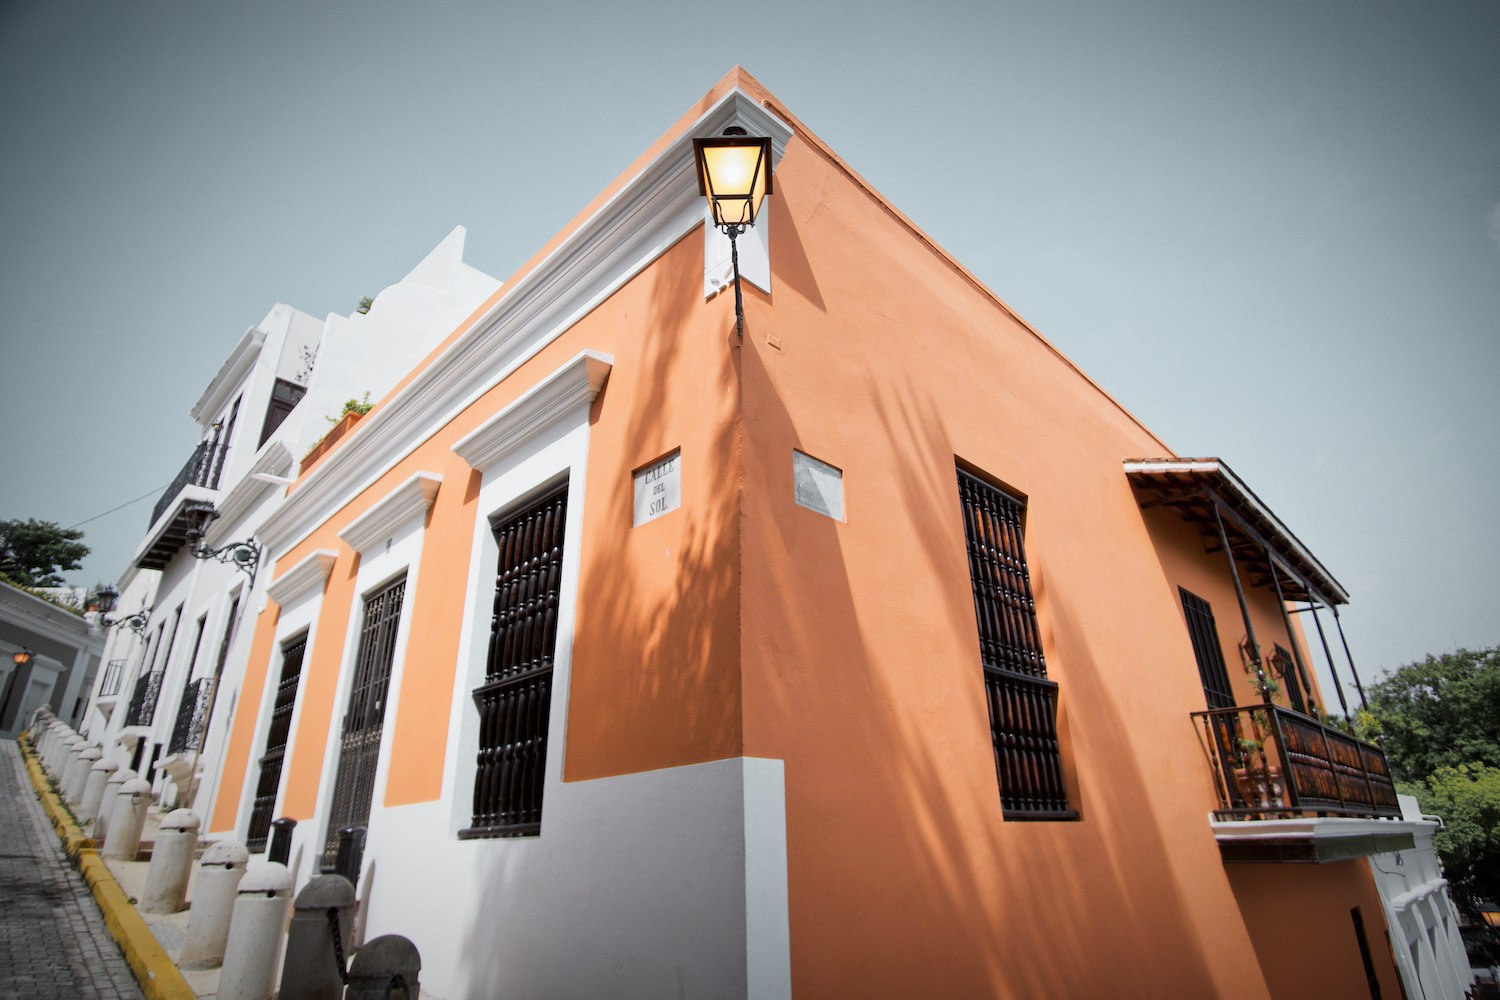 Airbnbs in Puerto Rico 2020